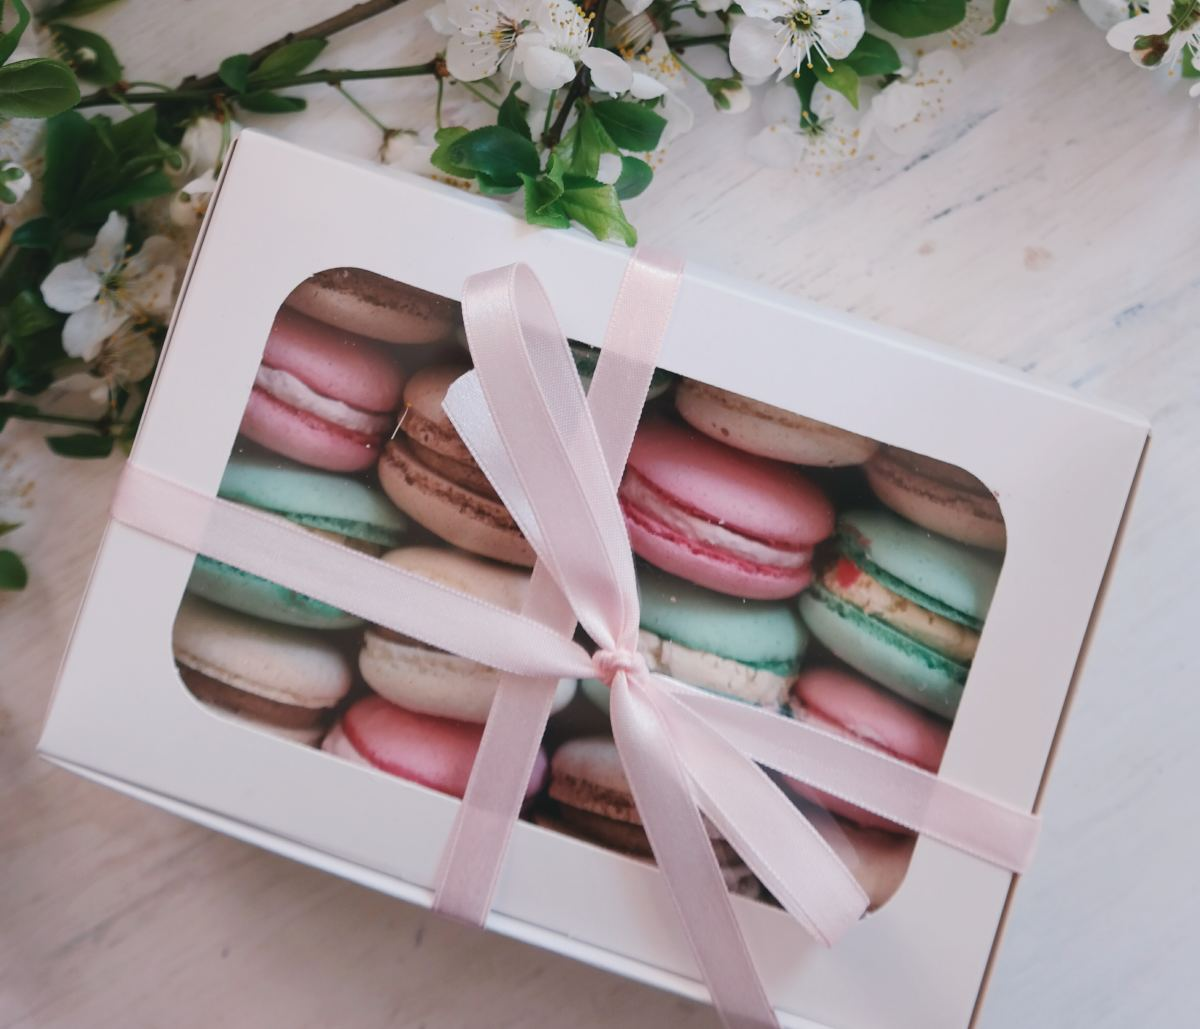 Macarons, chocolates, or other nicely packaged food items make for a nice Christmas gift that won't go to waste.